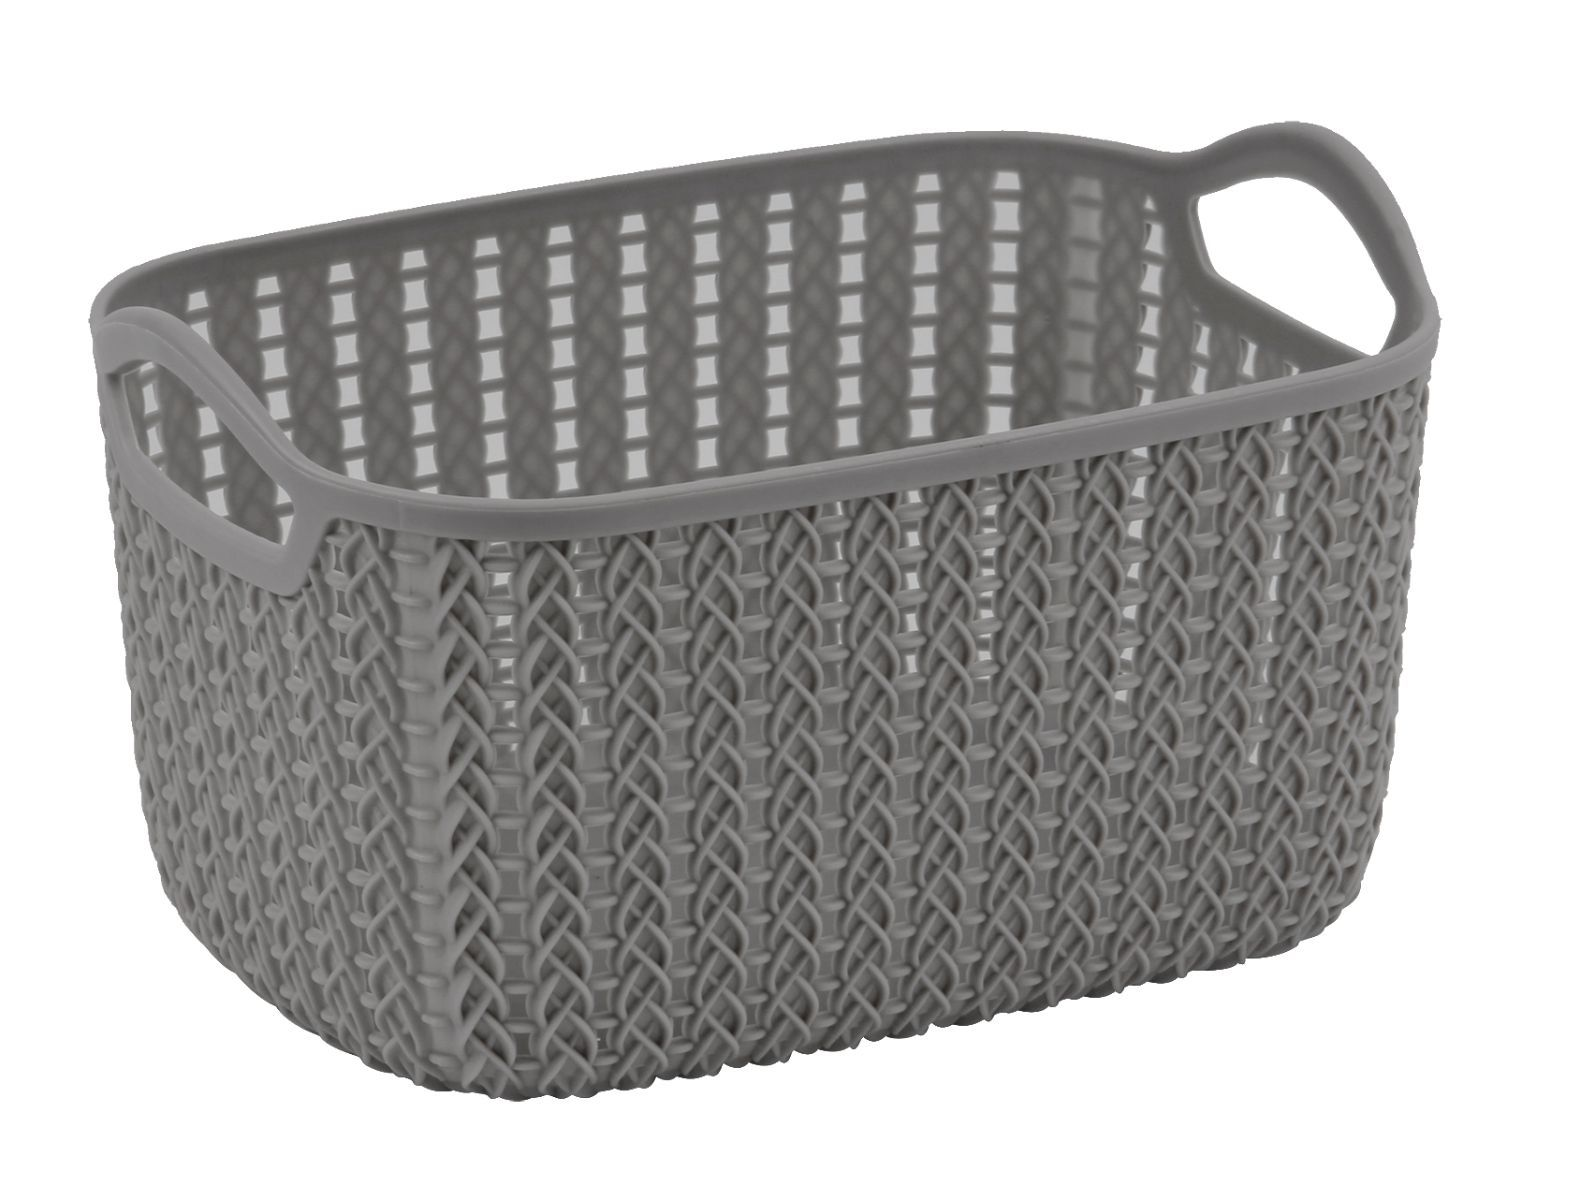 4 Litre Lace Storage Basket - Grey – Now Only £1.50